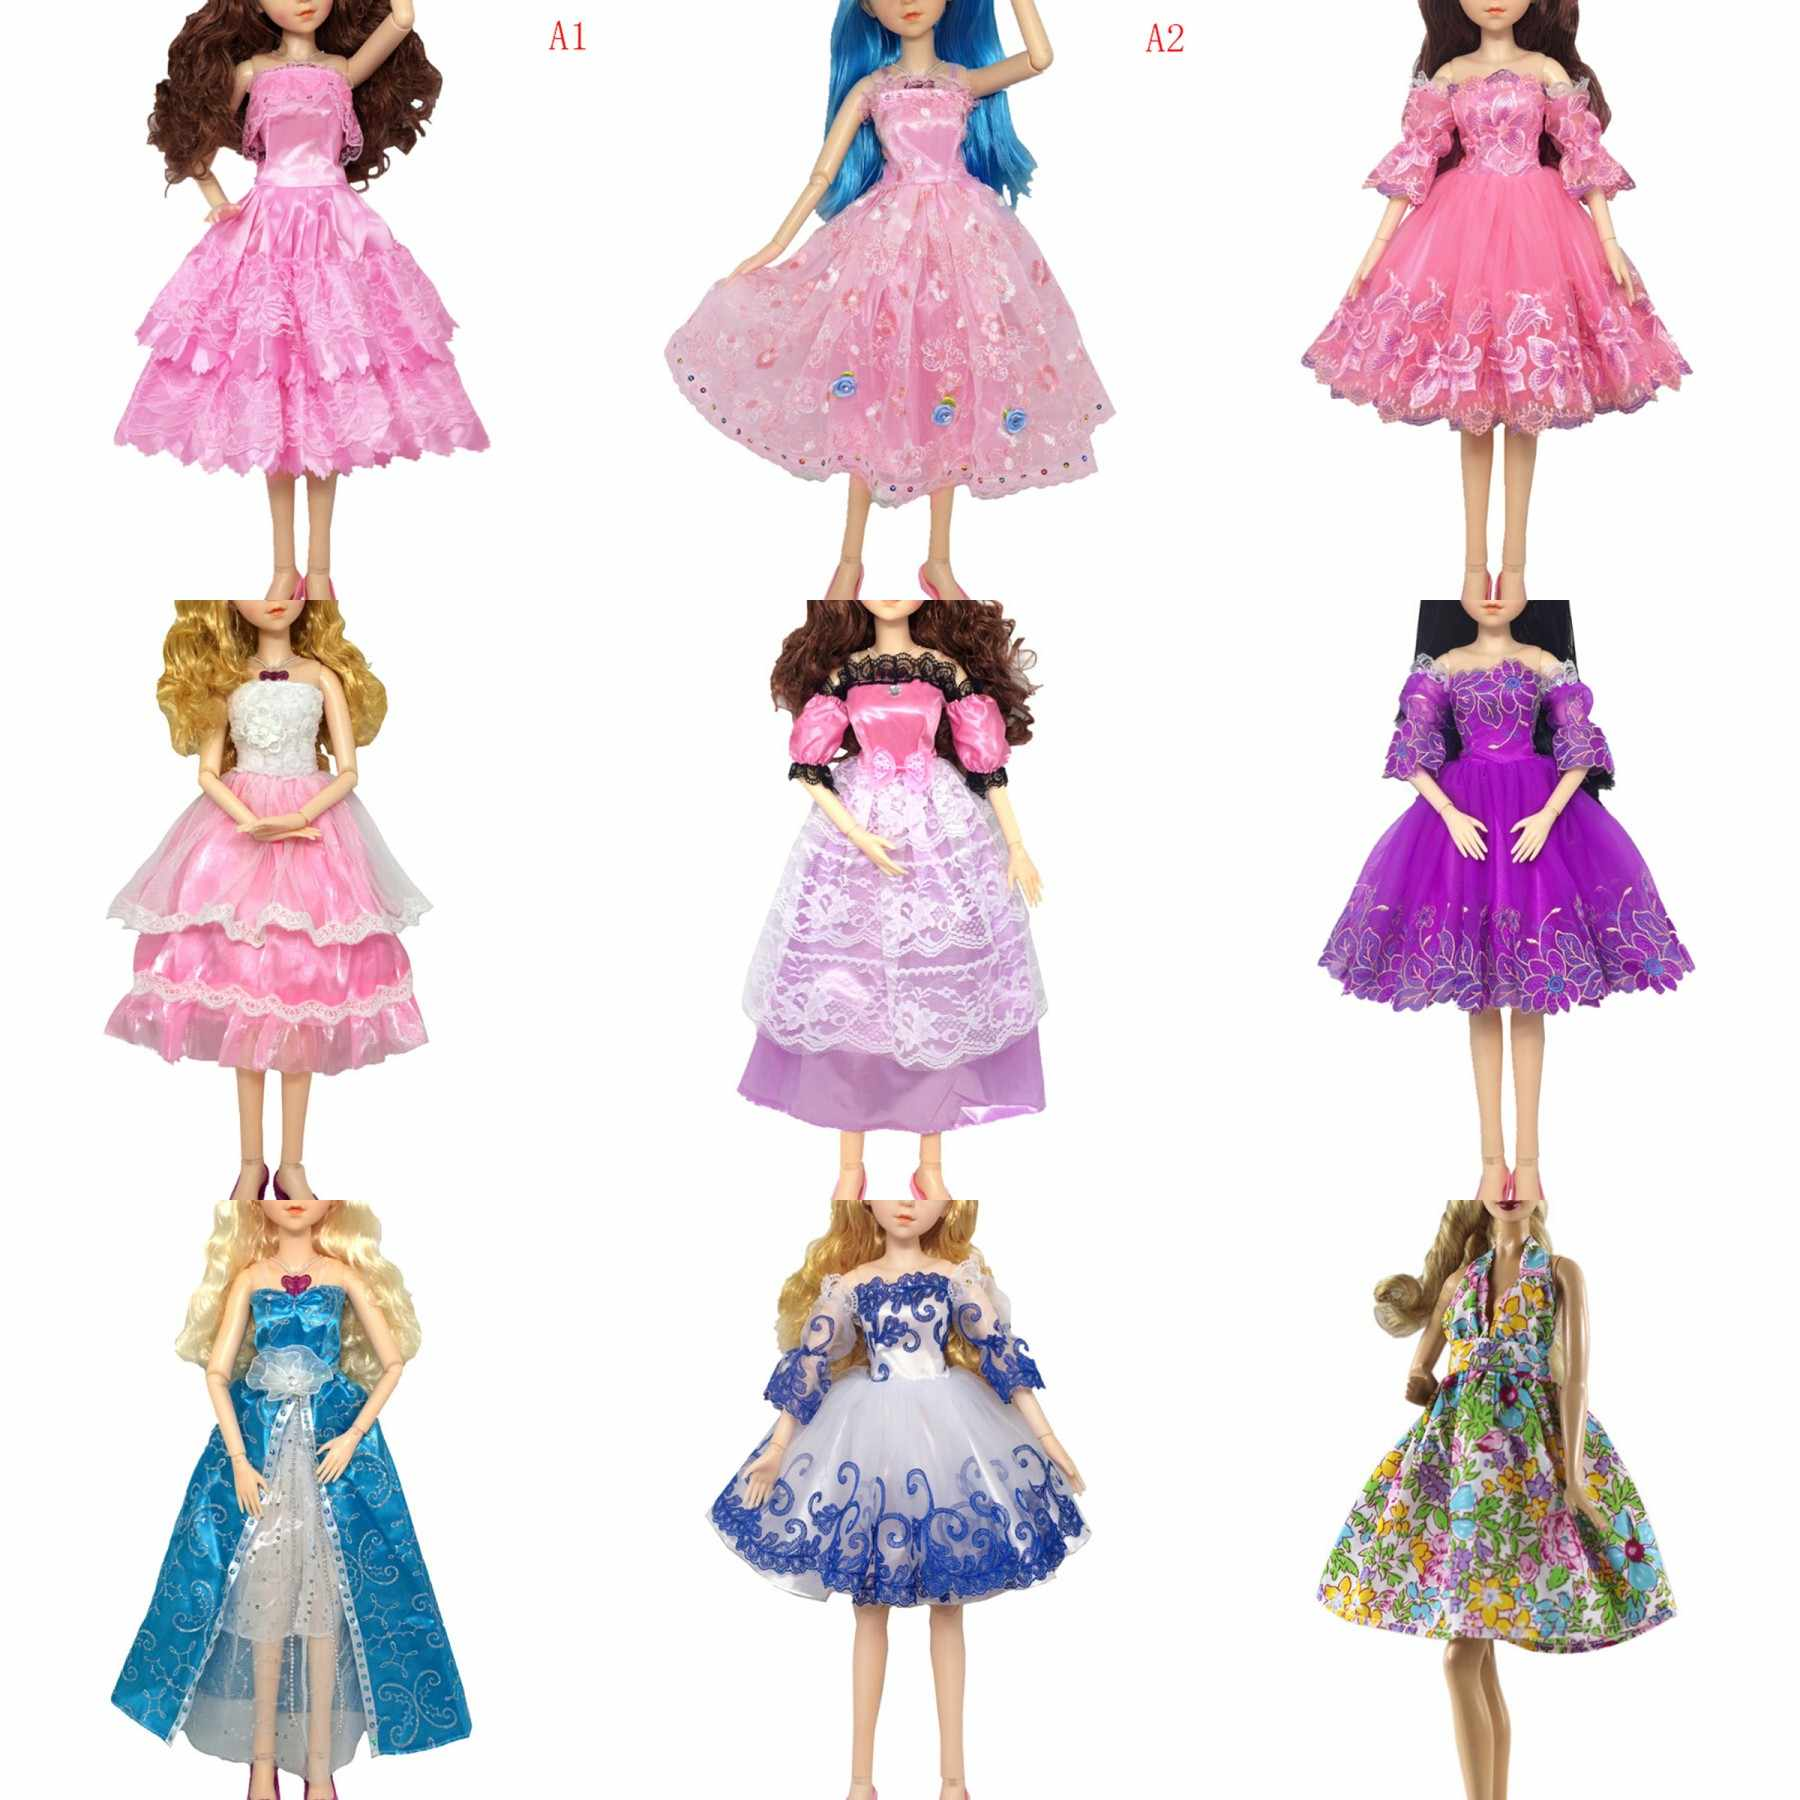 1PCS Pink/blue Handmade Doll Long Dress Clothes Evening Wedding Dress Party Dresses For 1/3 bjd 60cm Doll Accessories